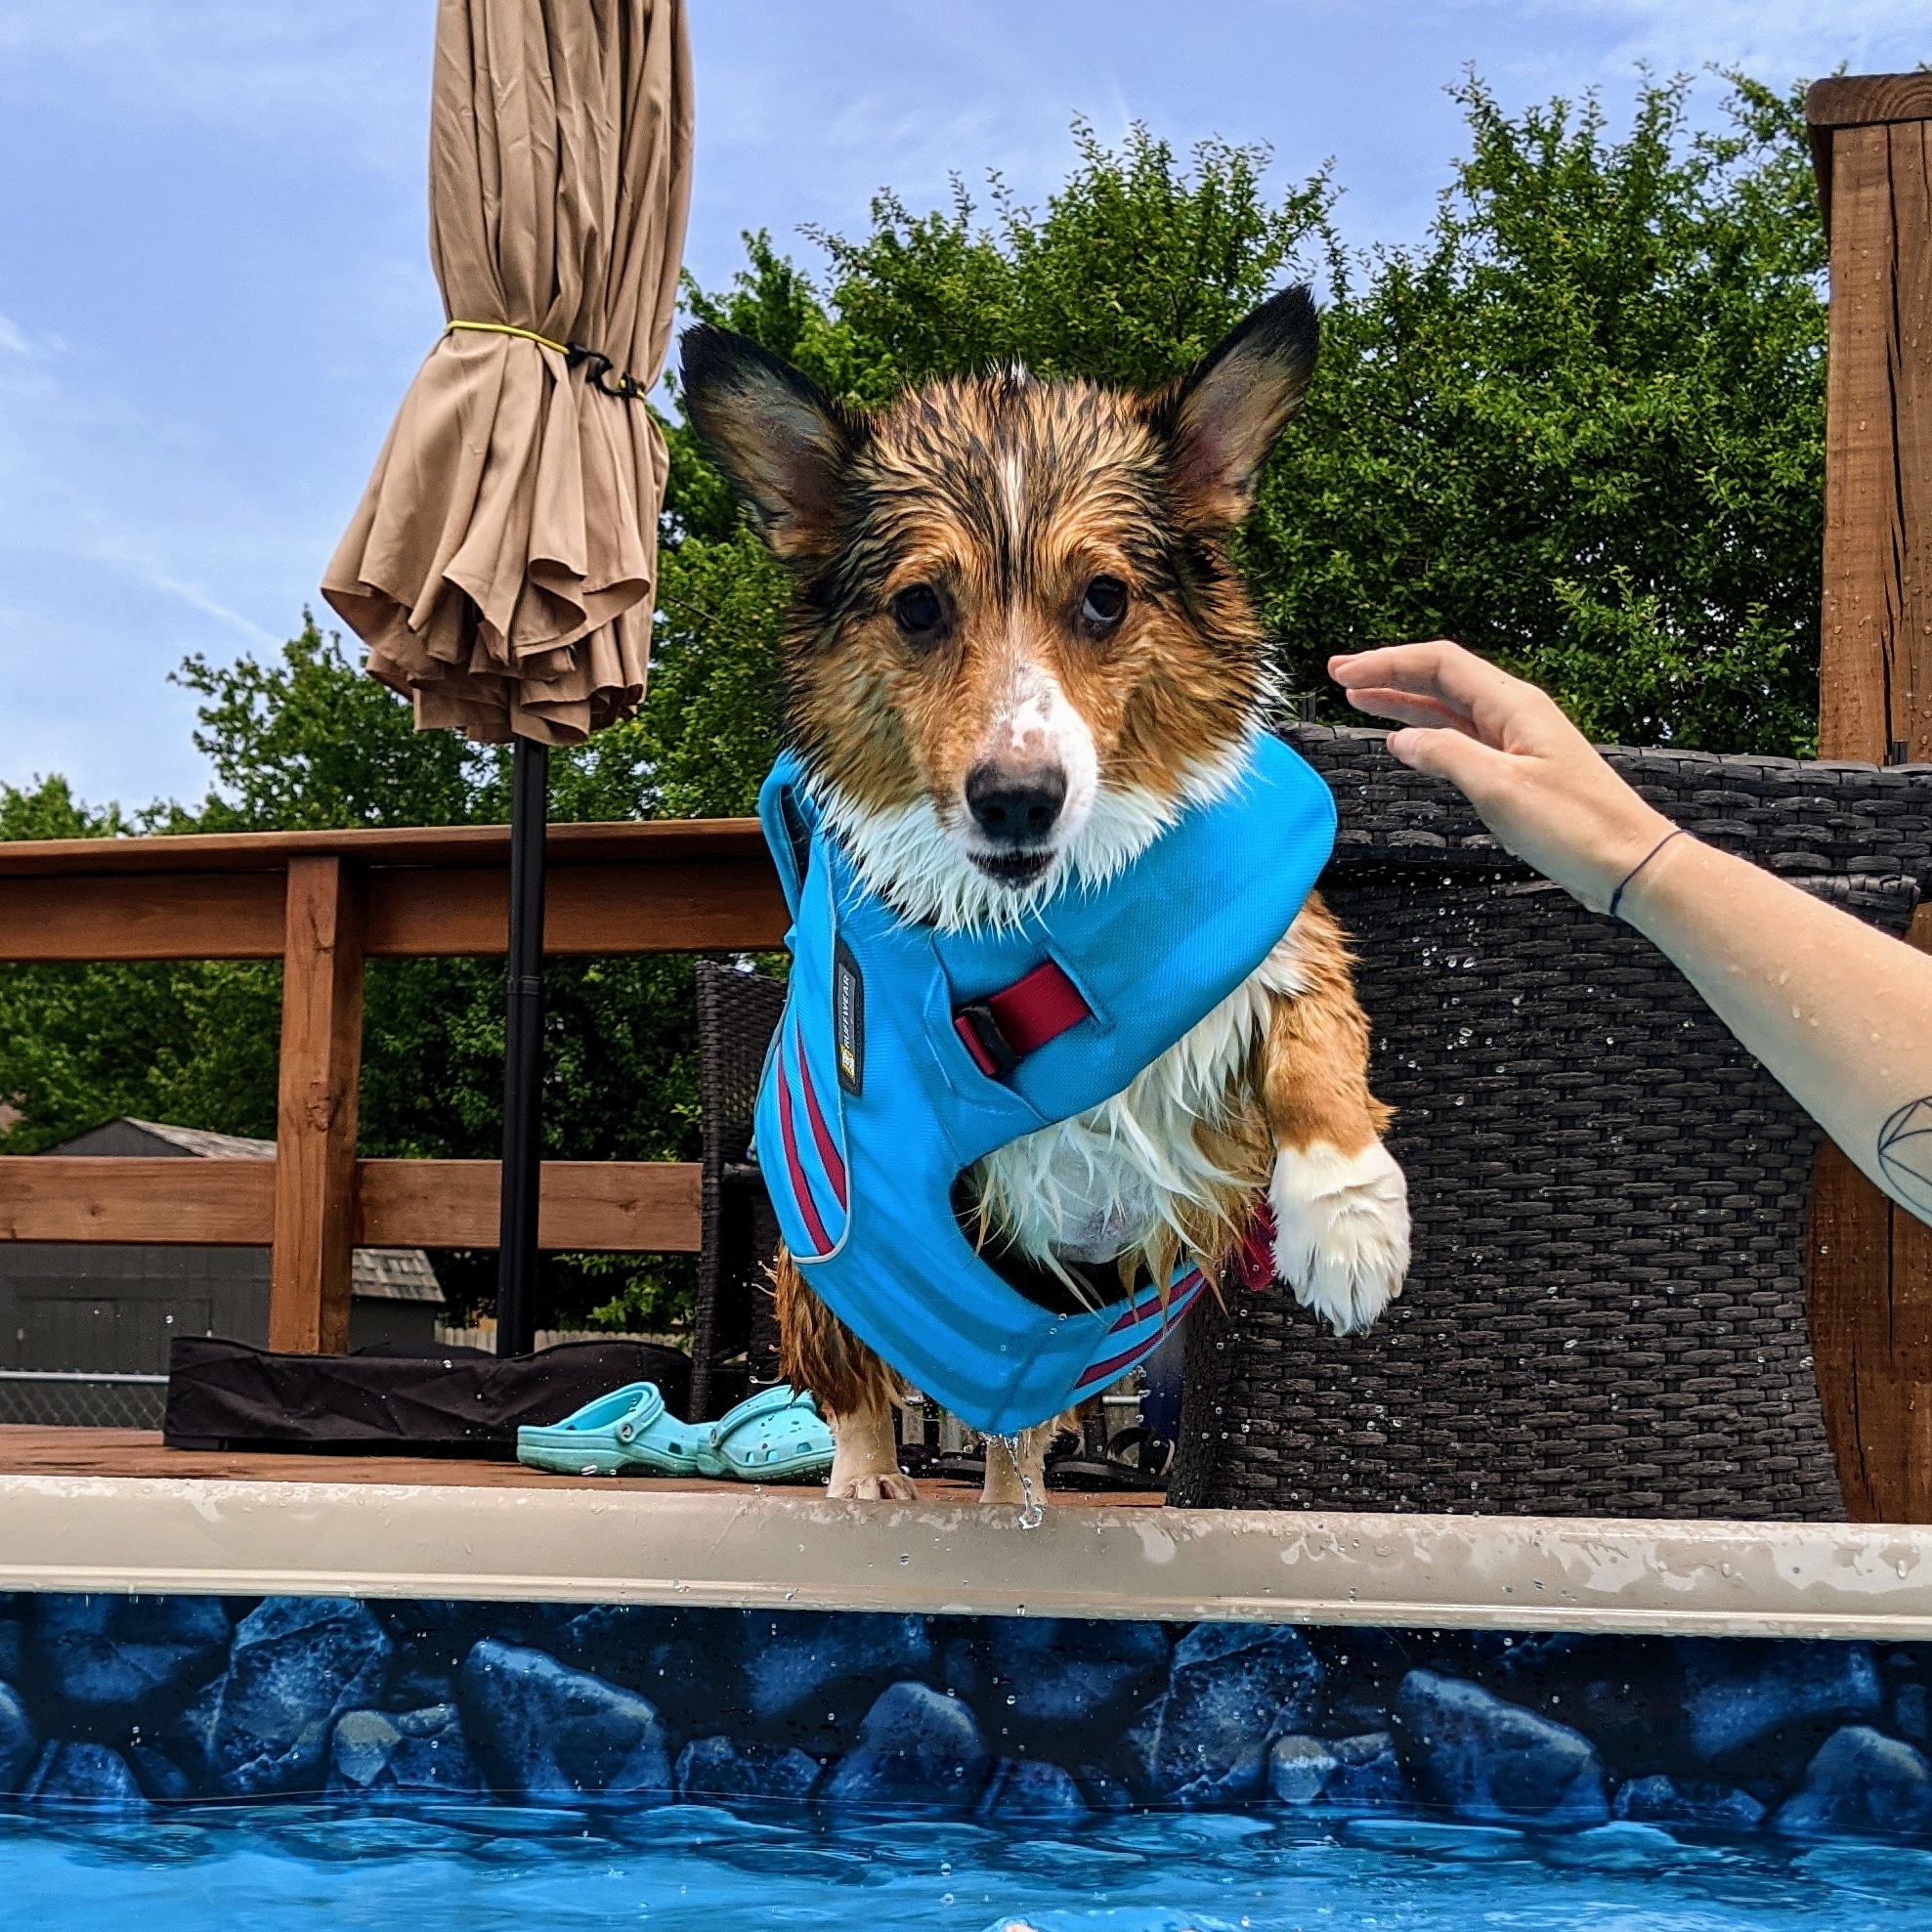 Charles, a three-legged sable pembroke welsh corgi wearing a blue life jacket, jumps into a pool